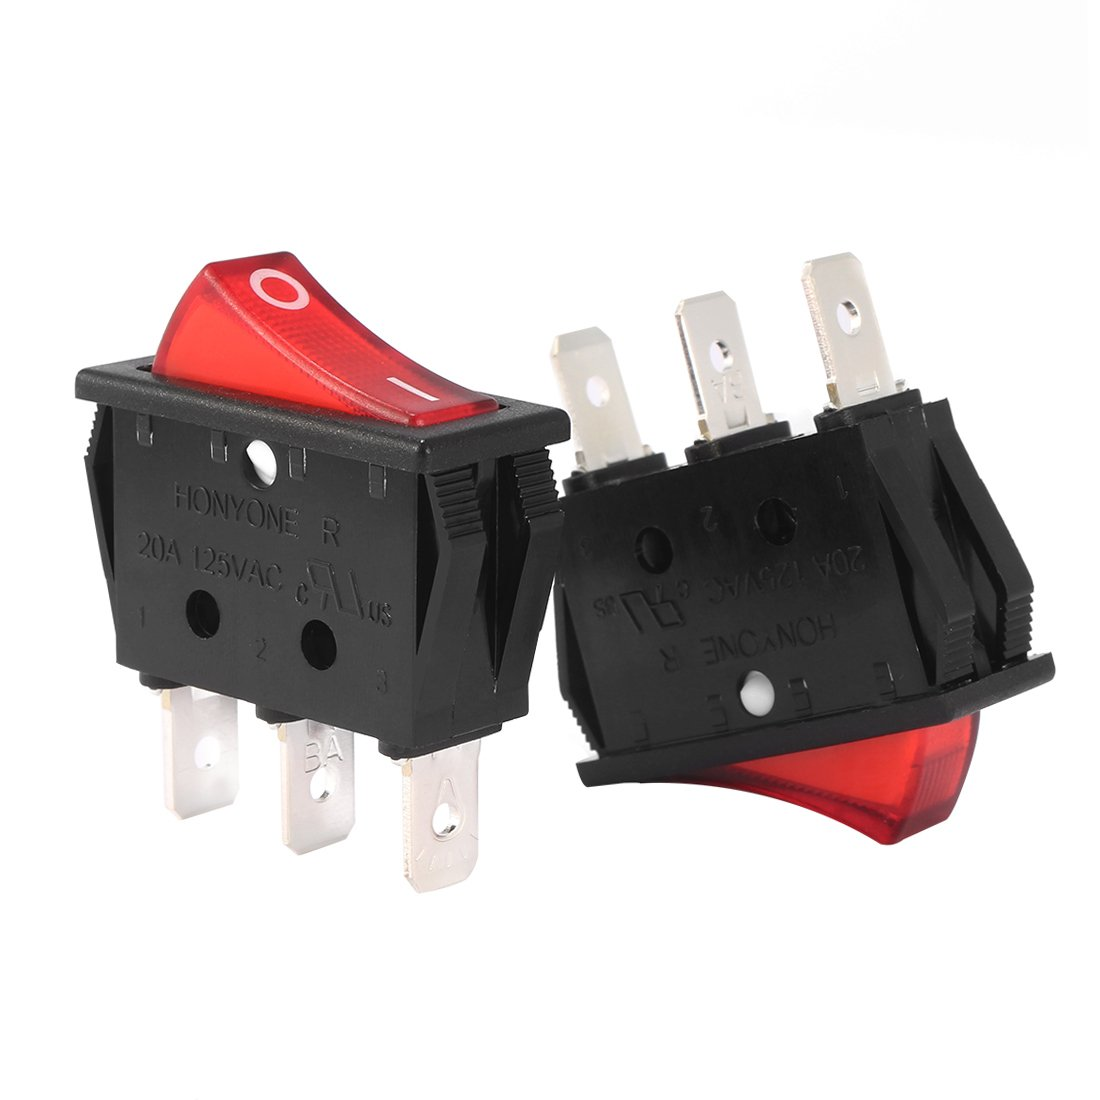 uxcell 10Pcs AC 20A/125V 22A/250V SPST 3 Pin 2 Position Boat Rocker Switches On Off with Red Backlit LED Light